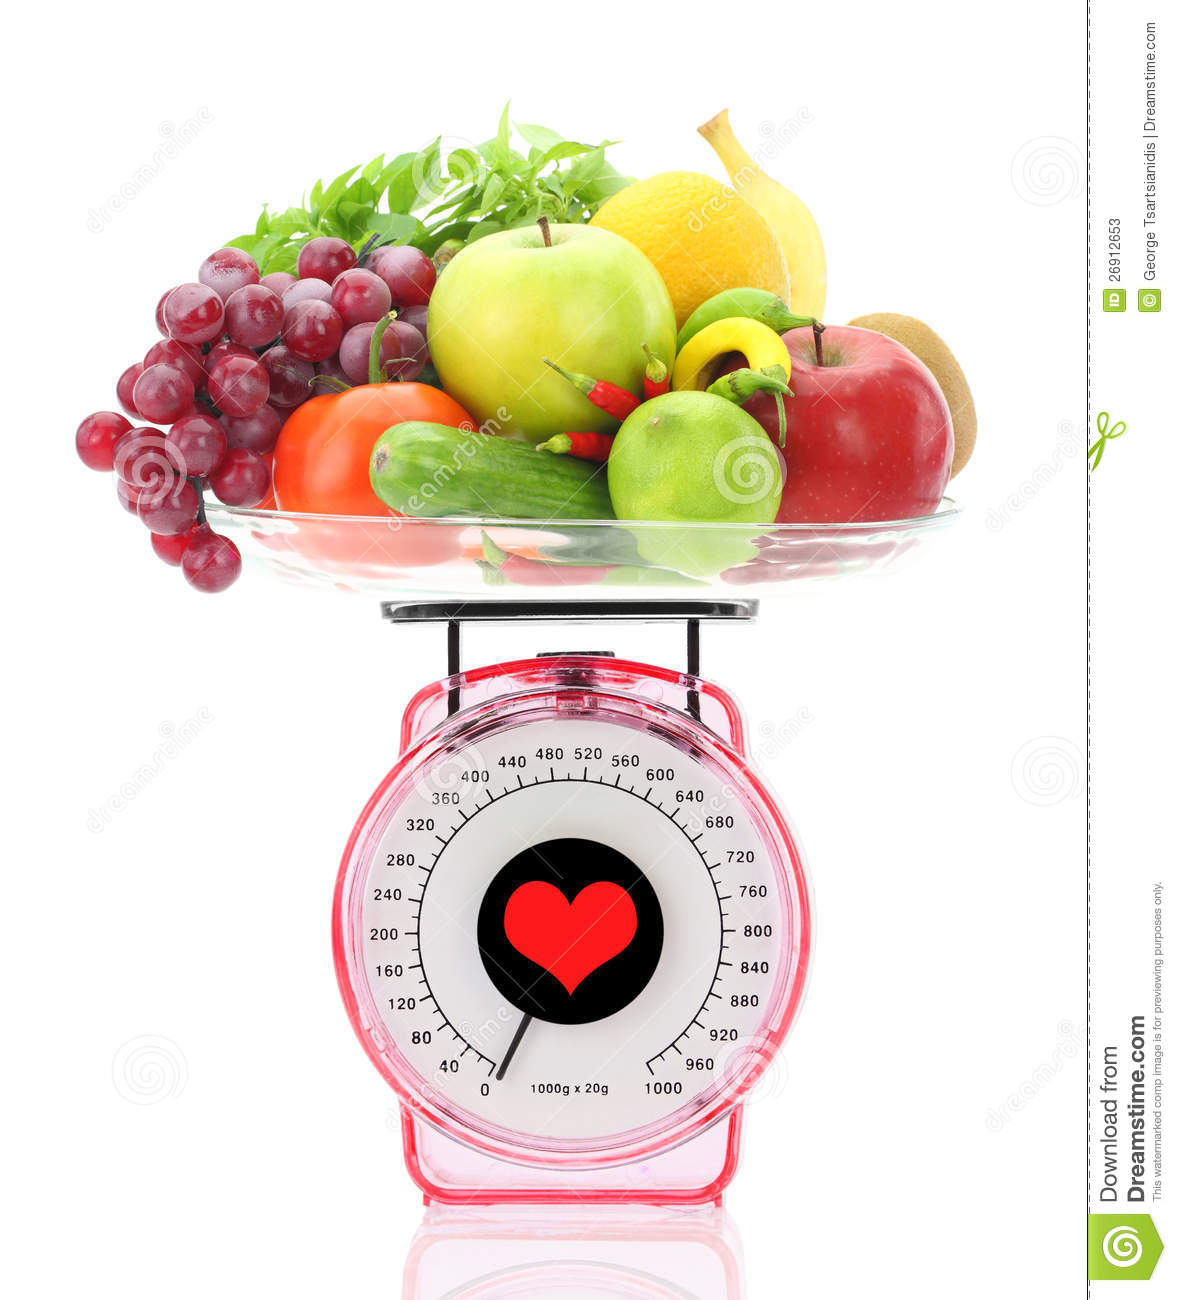 Kitchen Scale With Fruits And Vegetables Stock Image